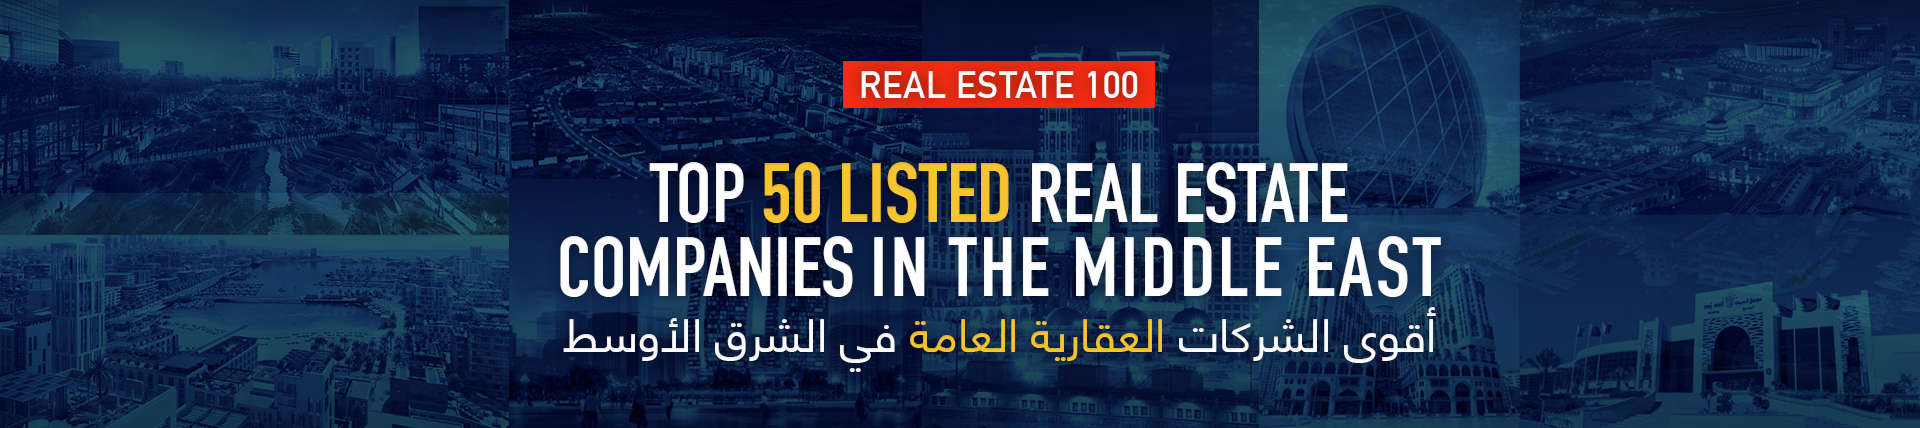 Top Listed Real Estate Companies in the Middle East 2019